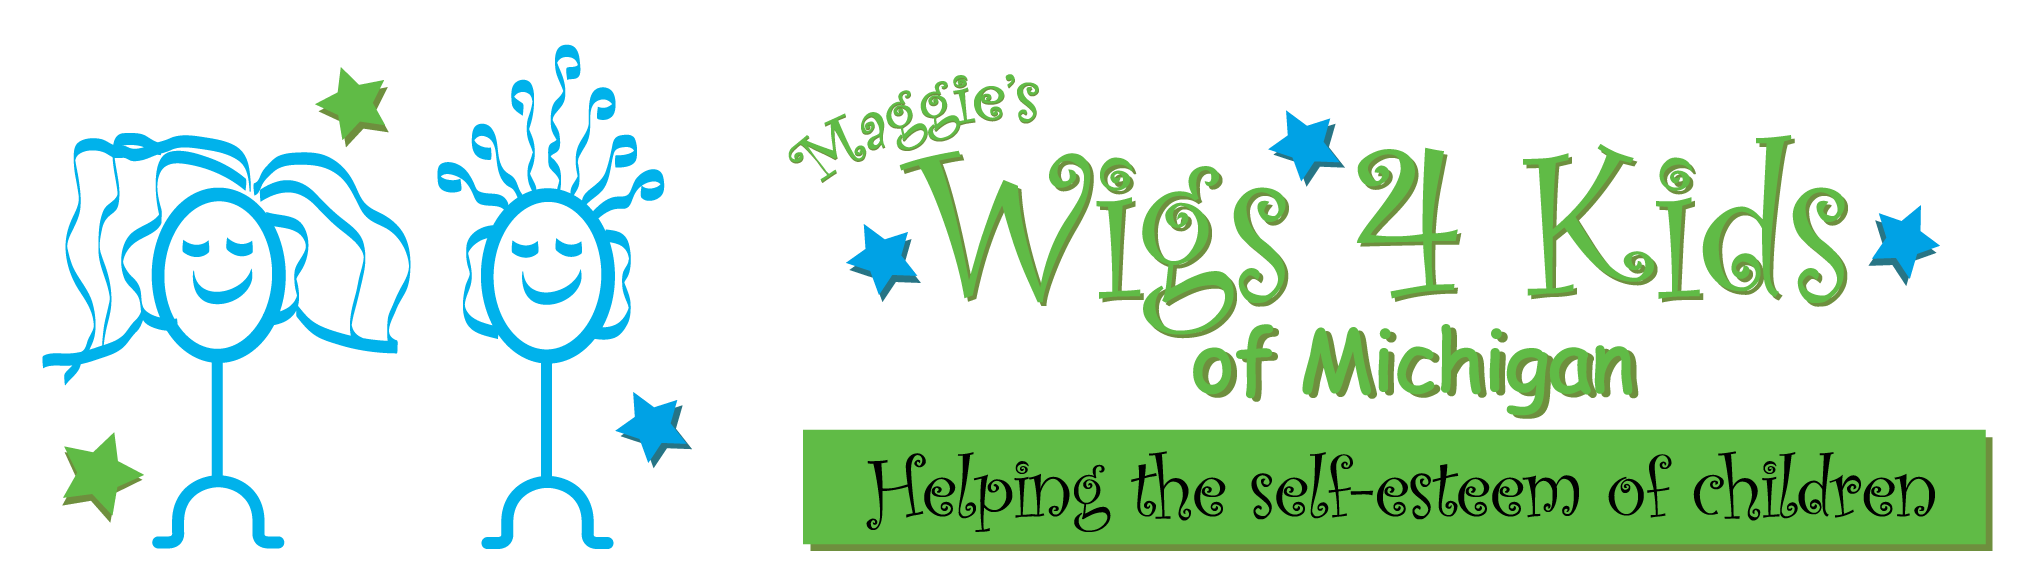 Salon Supporters Wigs4kids Of Michigan